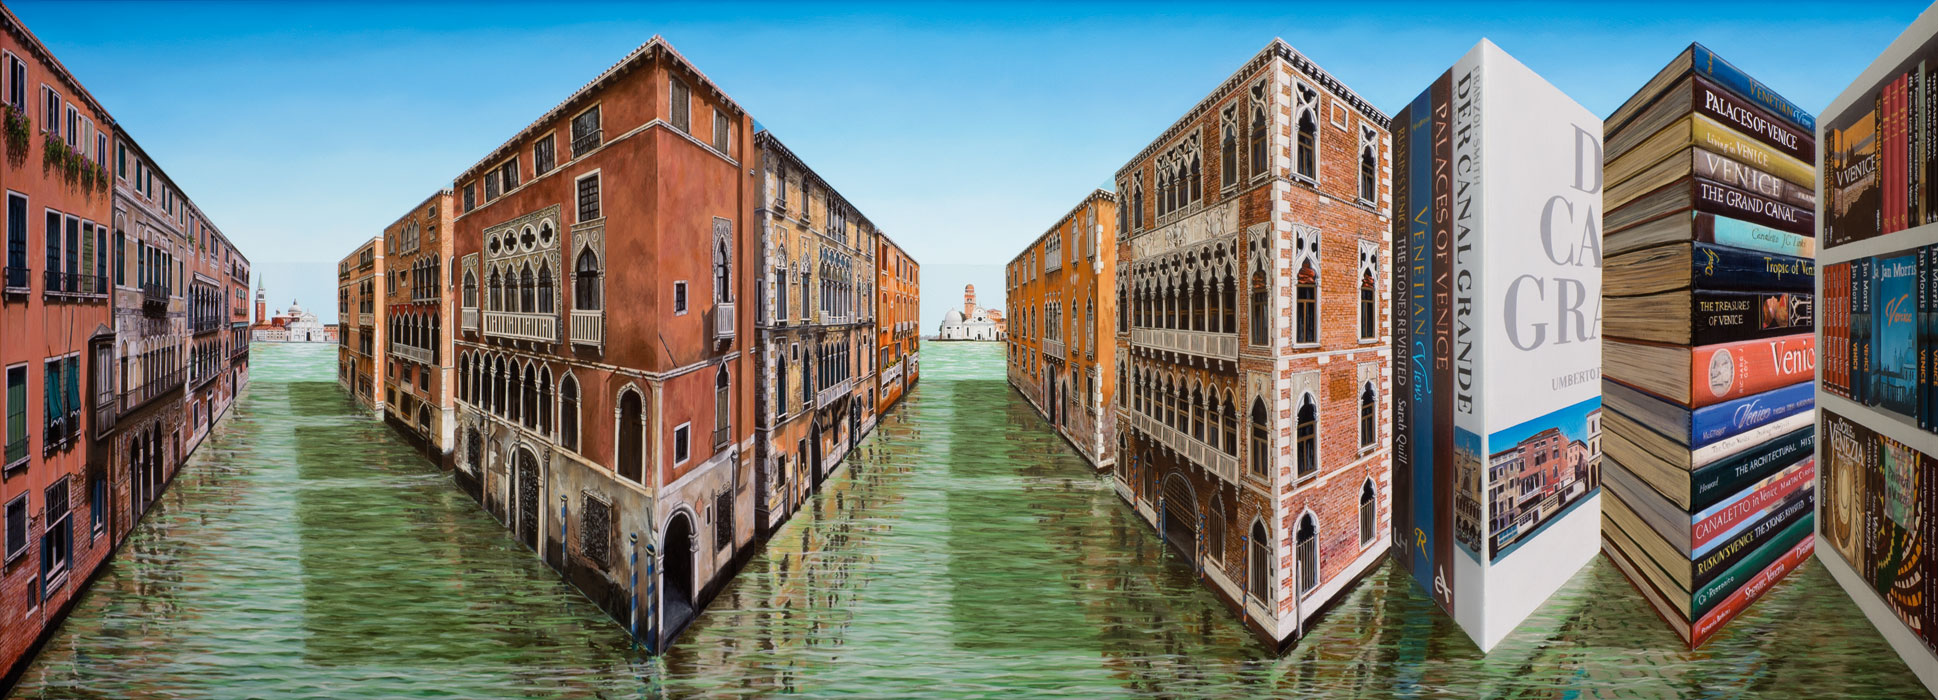 Venice Viewing <p>2013 | 59 x 152 x 28 cm / 23¼ x 60 x 11¼ in</p>